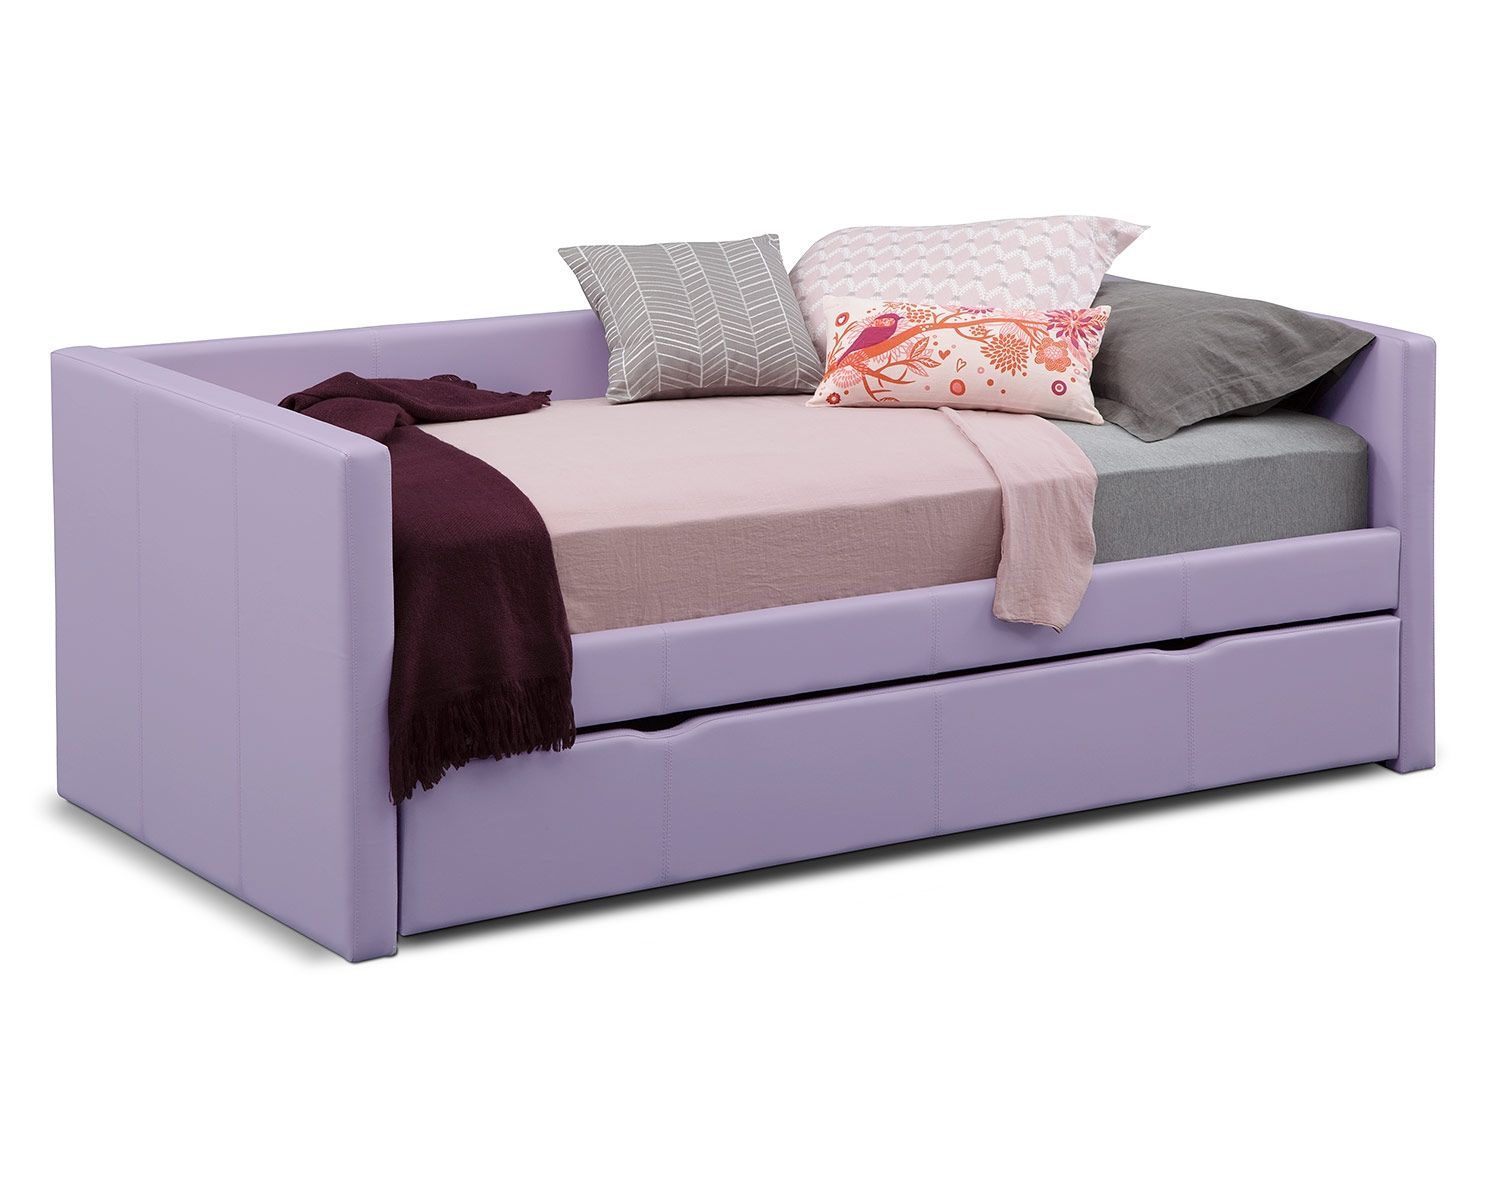 Daybed with pop up trundle ikea the carey purple collection  home decor  pinterest  mattress